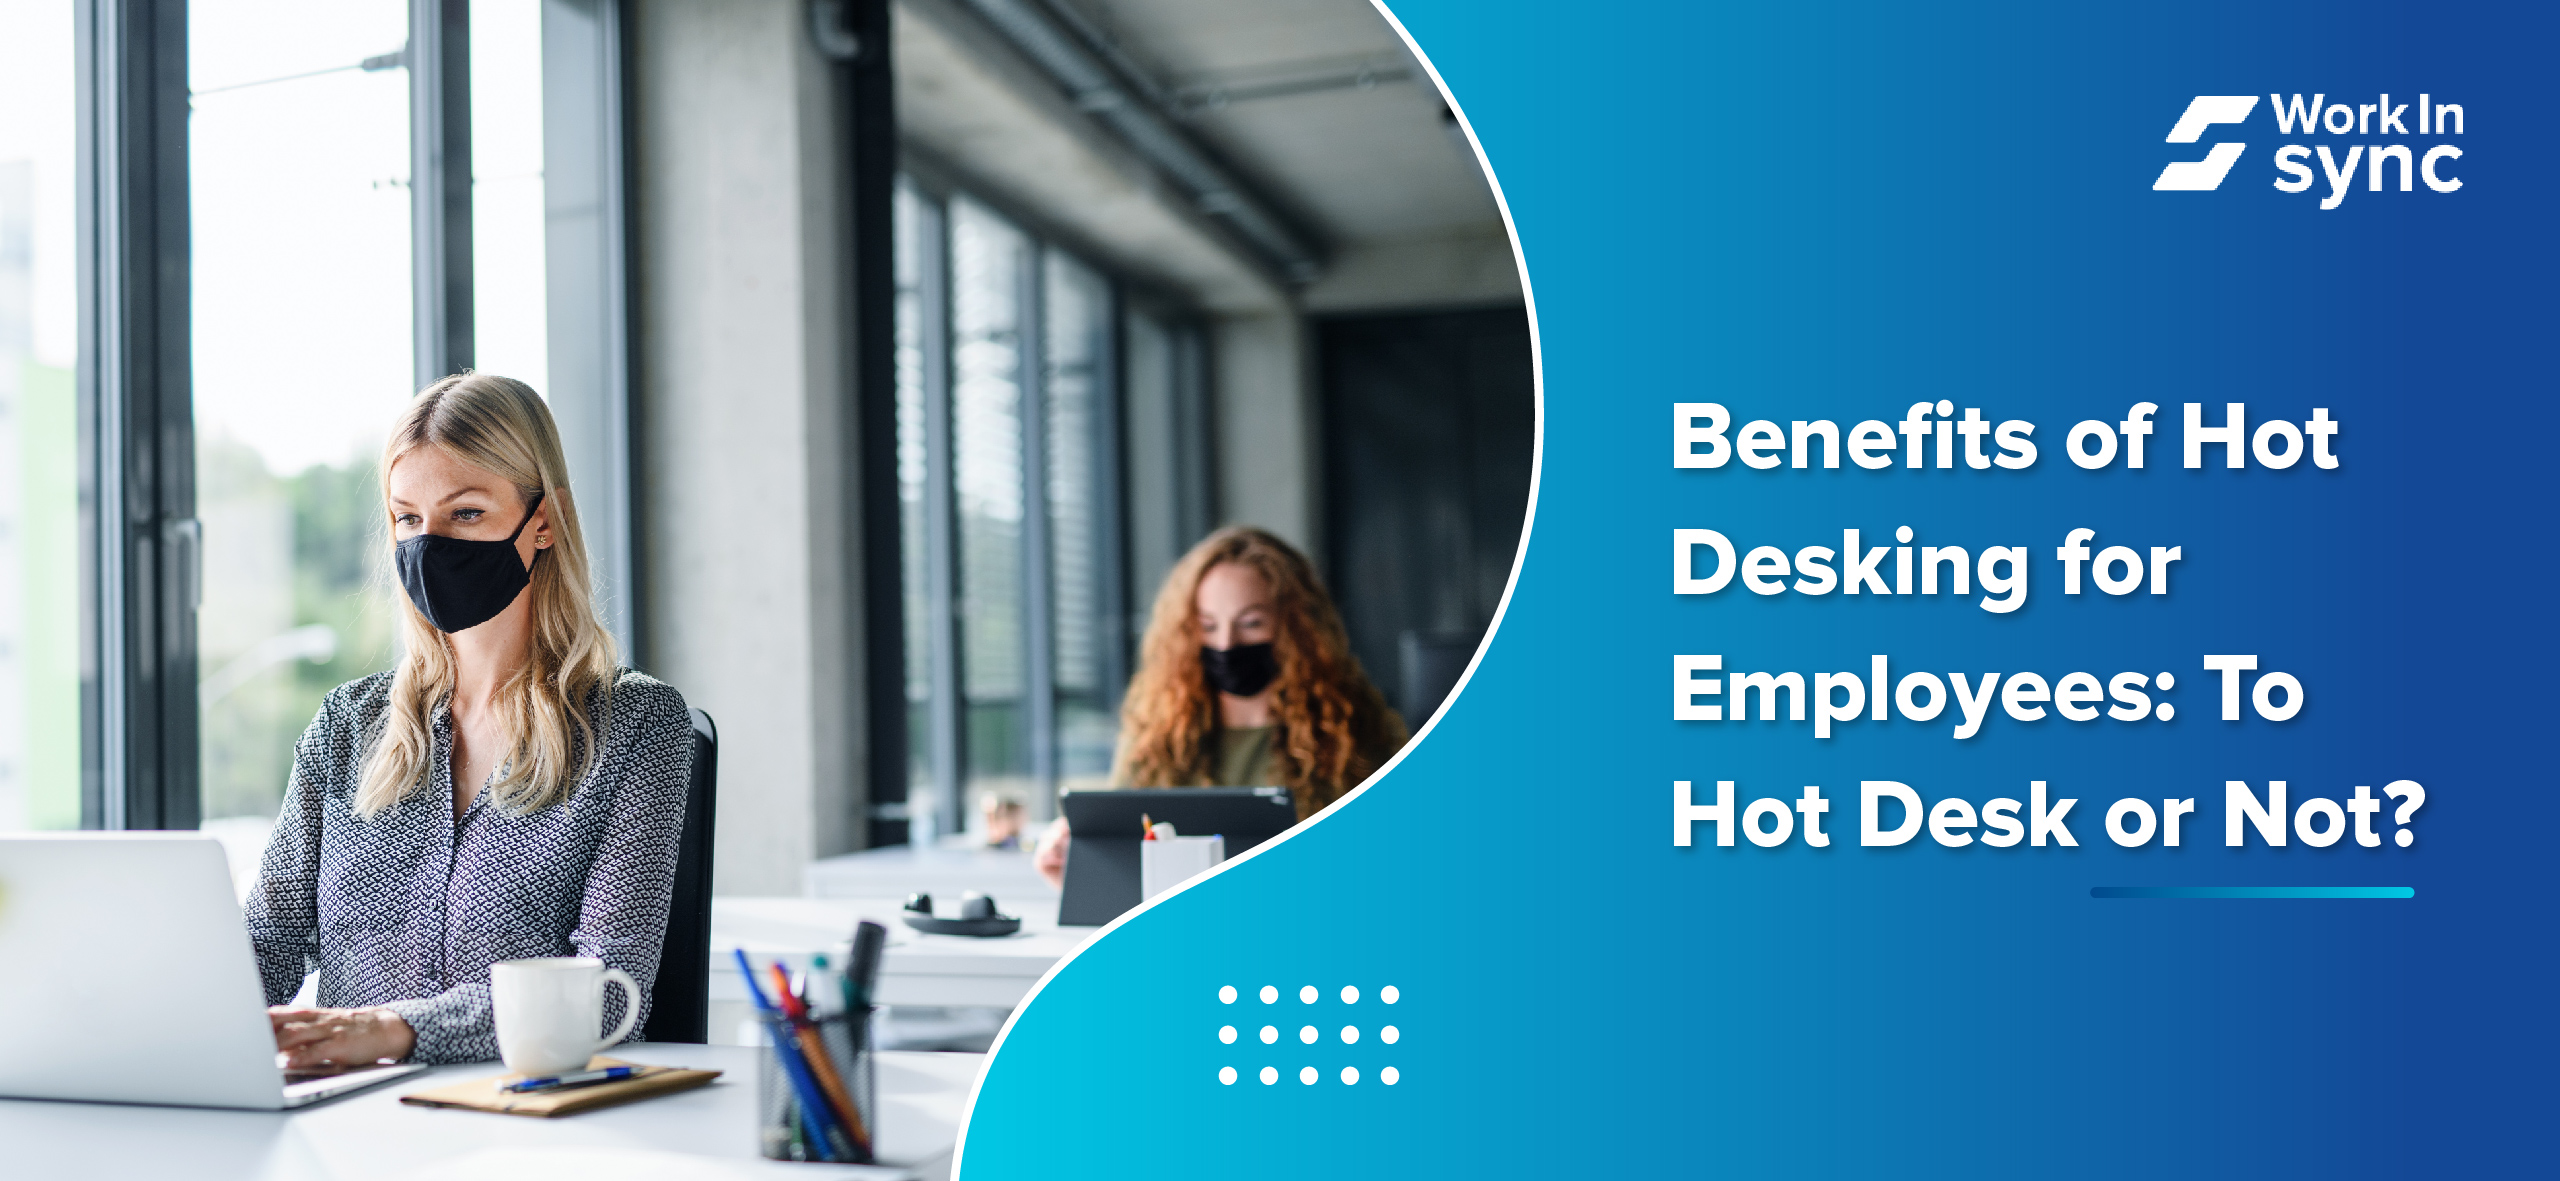 Benefits of Hot Desking for Employees: To Hot Desk or Not?